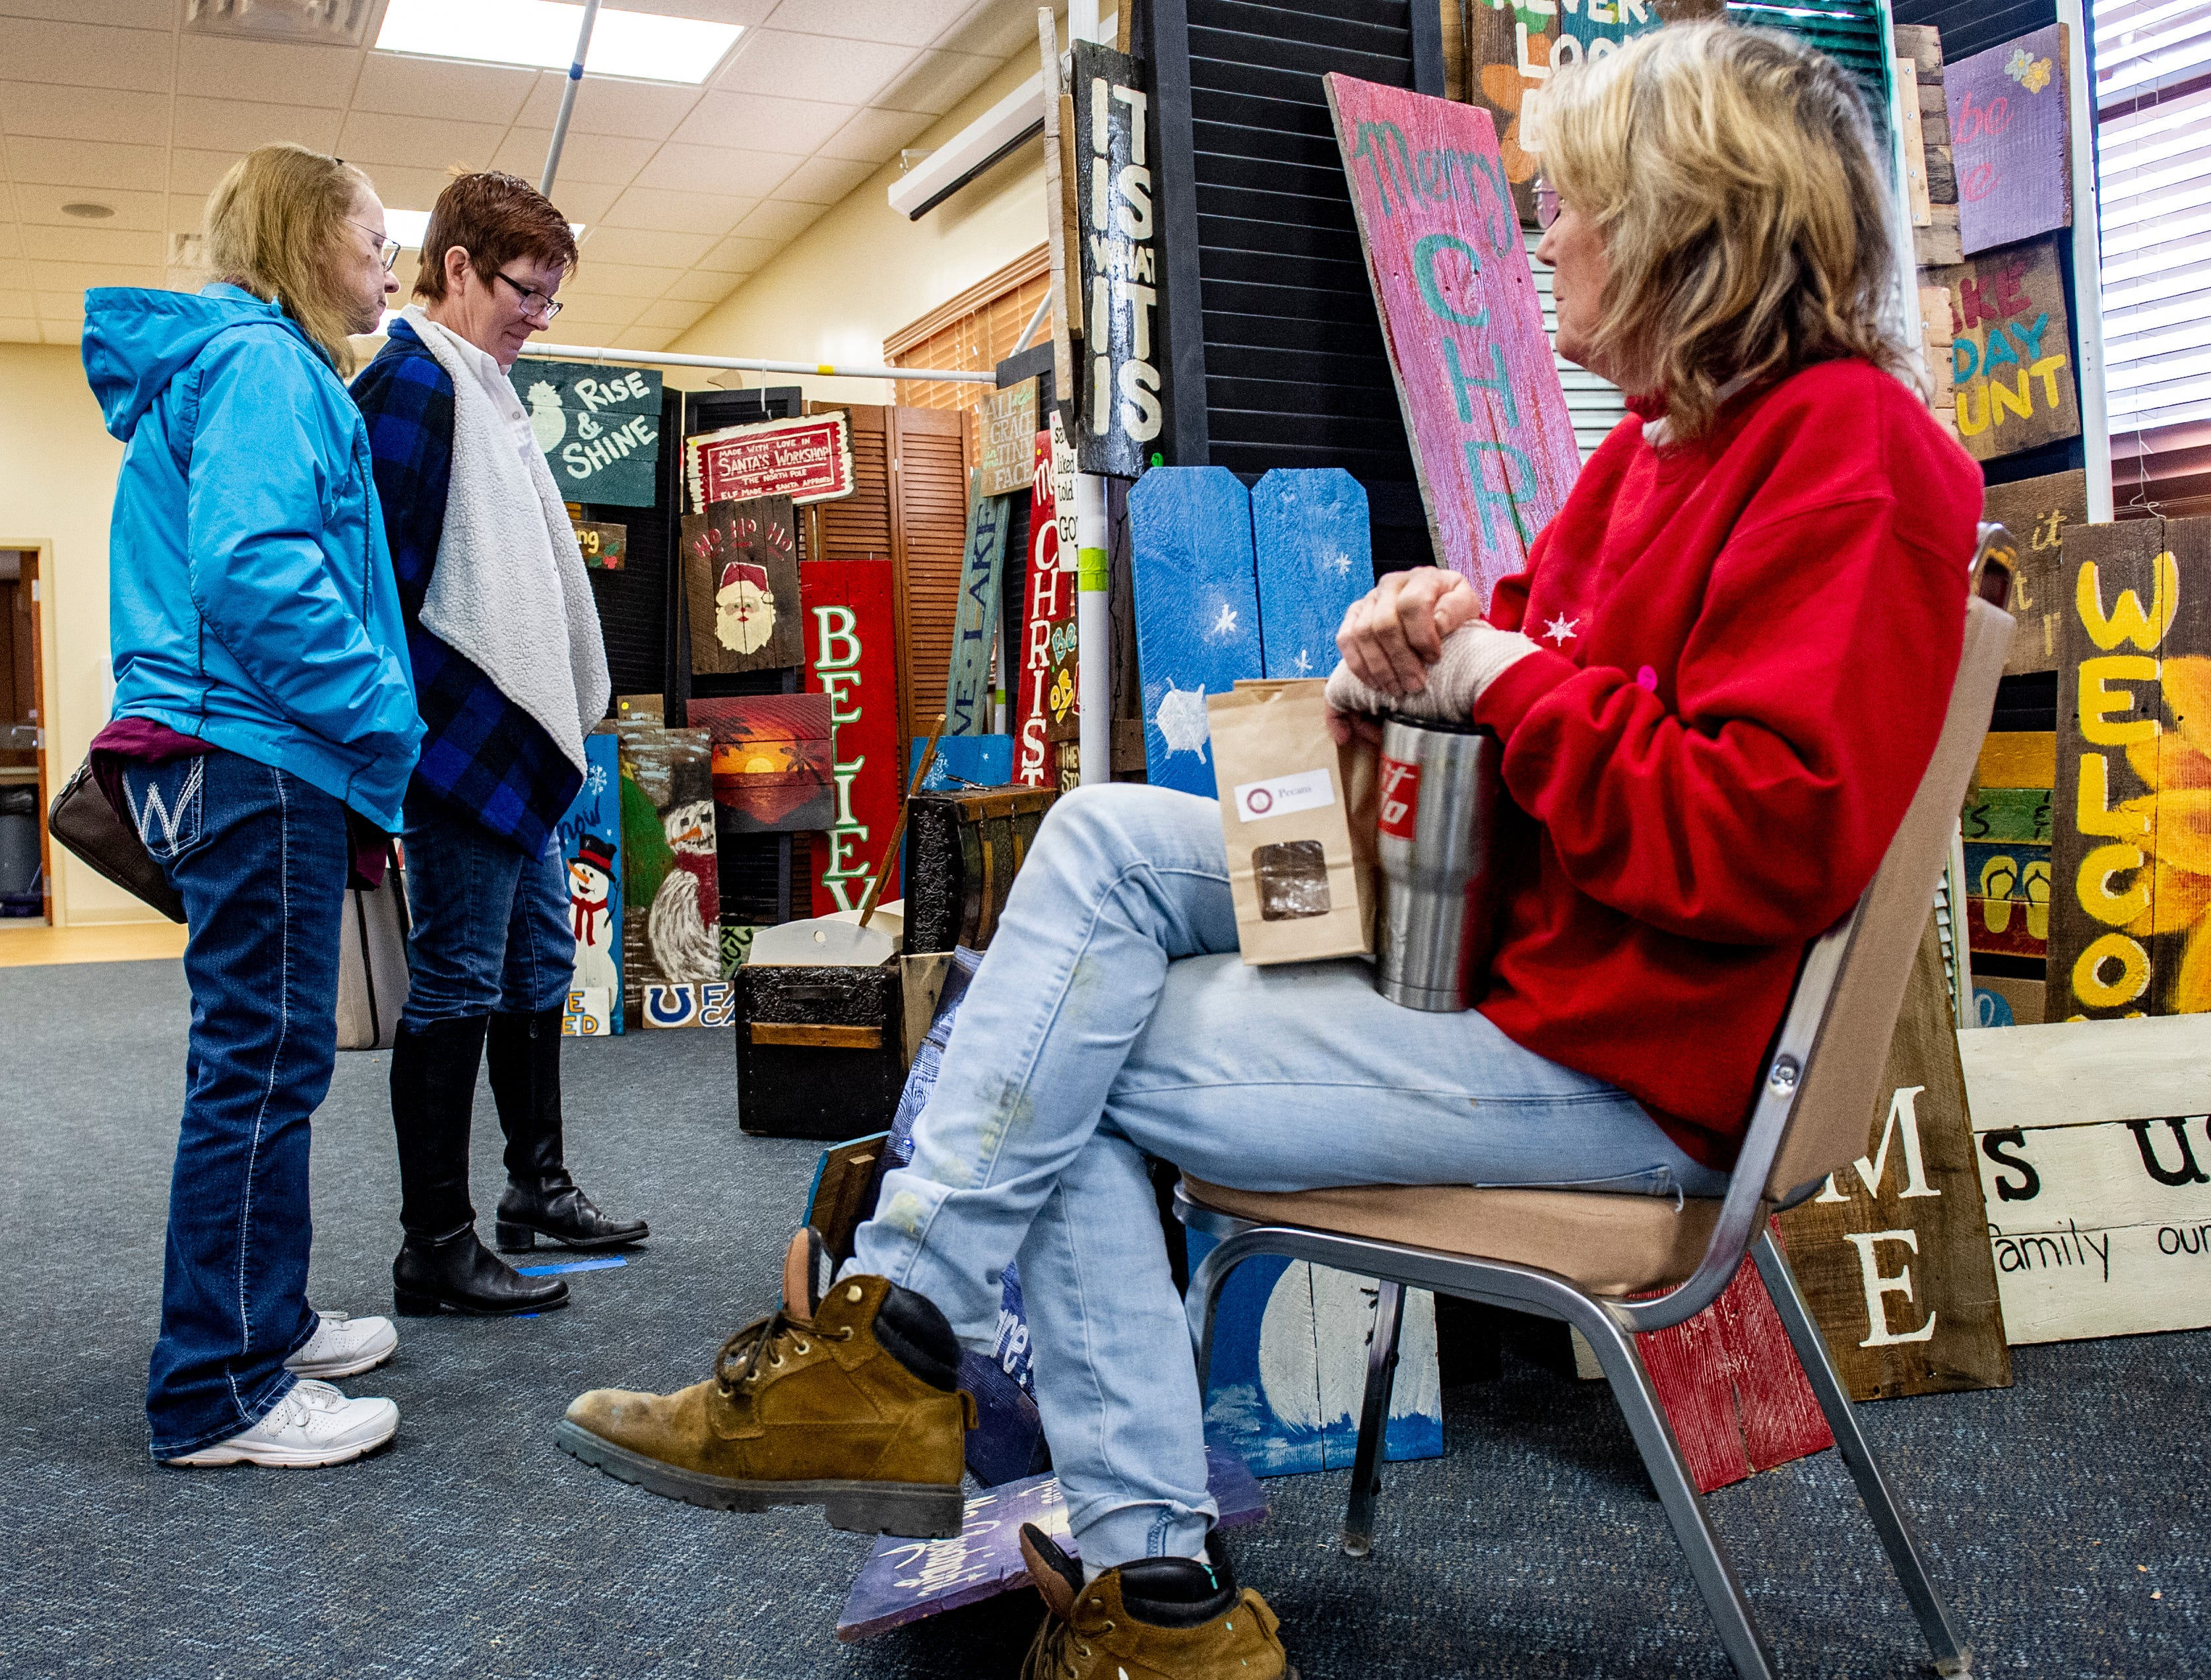 Deb Brown, left, and her friend Penny Greer shop the artist items offered by Joleen Kennedy, of Des Moines. Kennedy paints inspirational phrases on recycled wood. She said she took up the artwork after retiring to take care of her husband, a retired firefighter who has Alzheimer's disease. Kennedy's items were on display at the Rustiqueiowa Homespun Holiday Market held at the Trinity Presbyterian Church in Indianola Nov. 24, 2018.